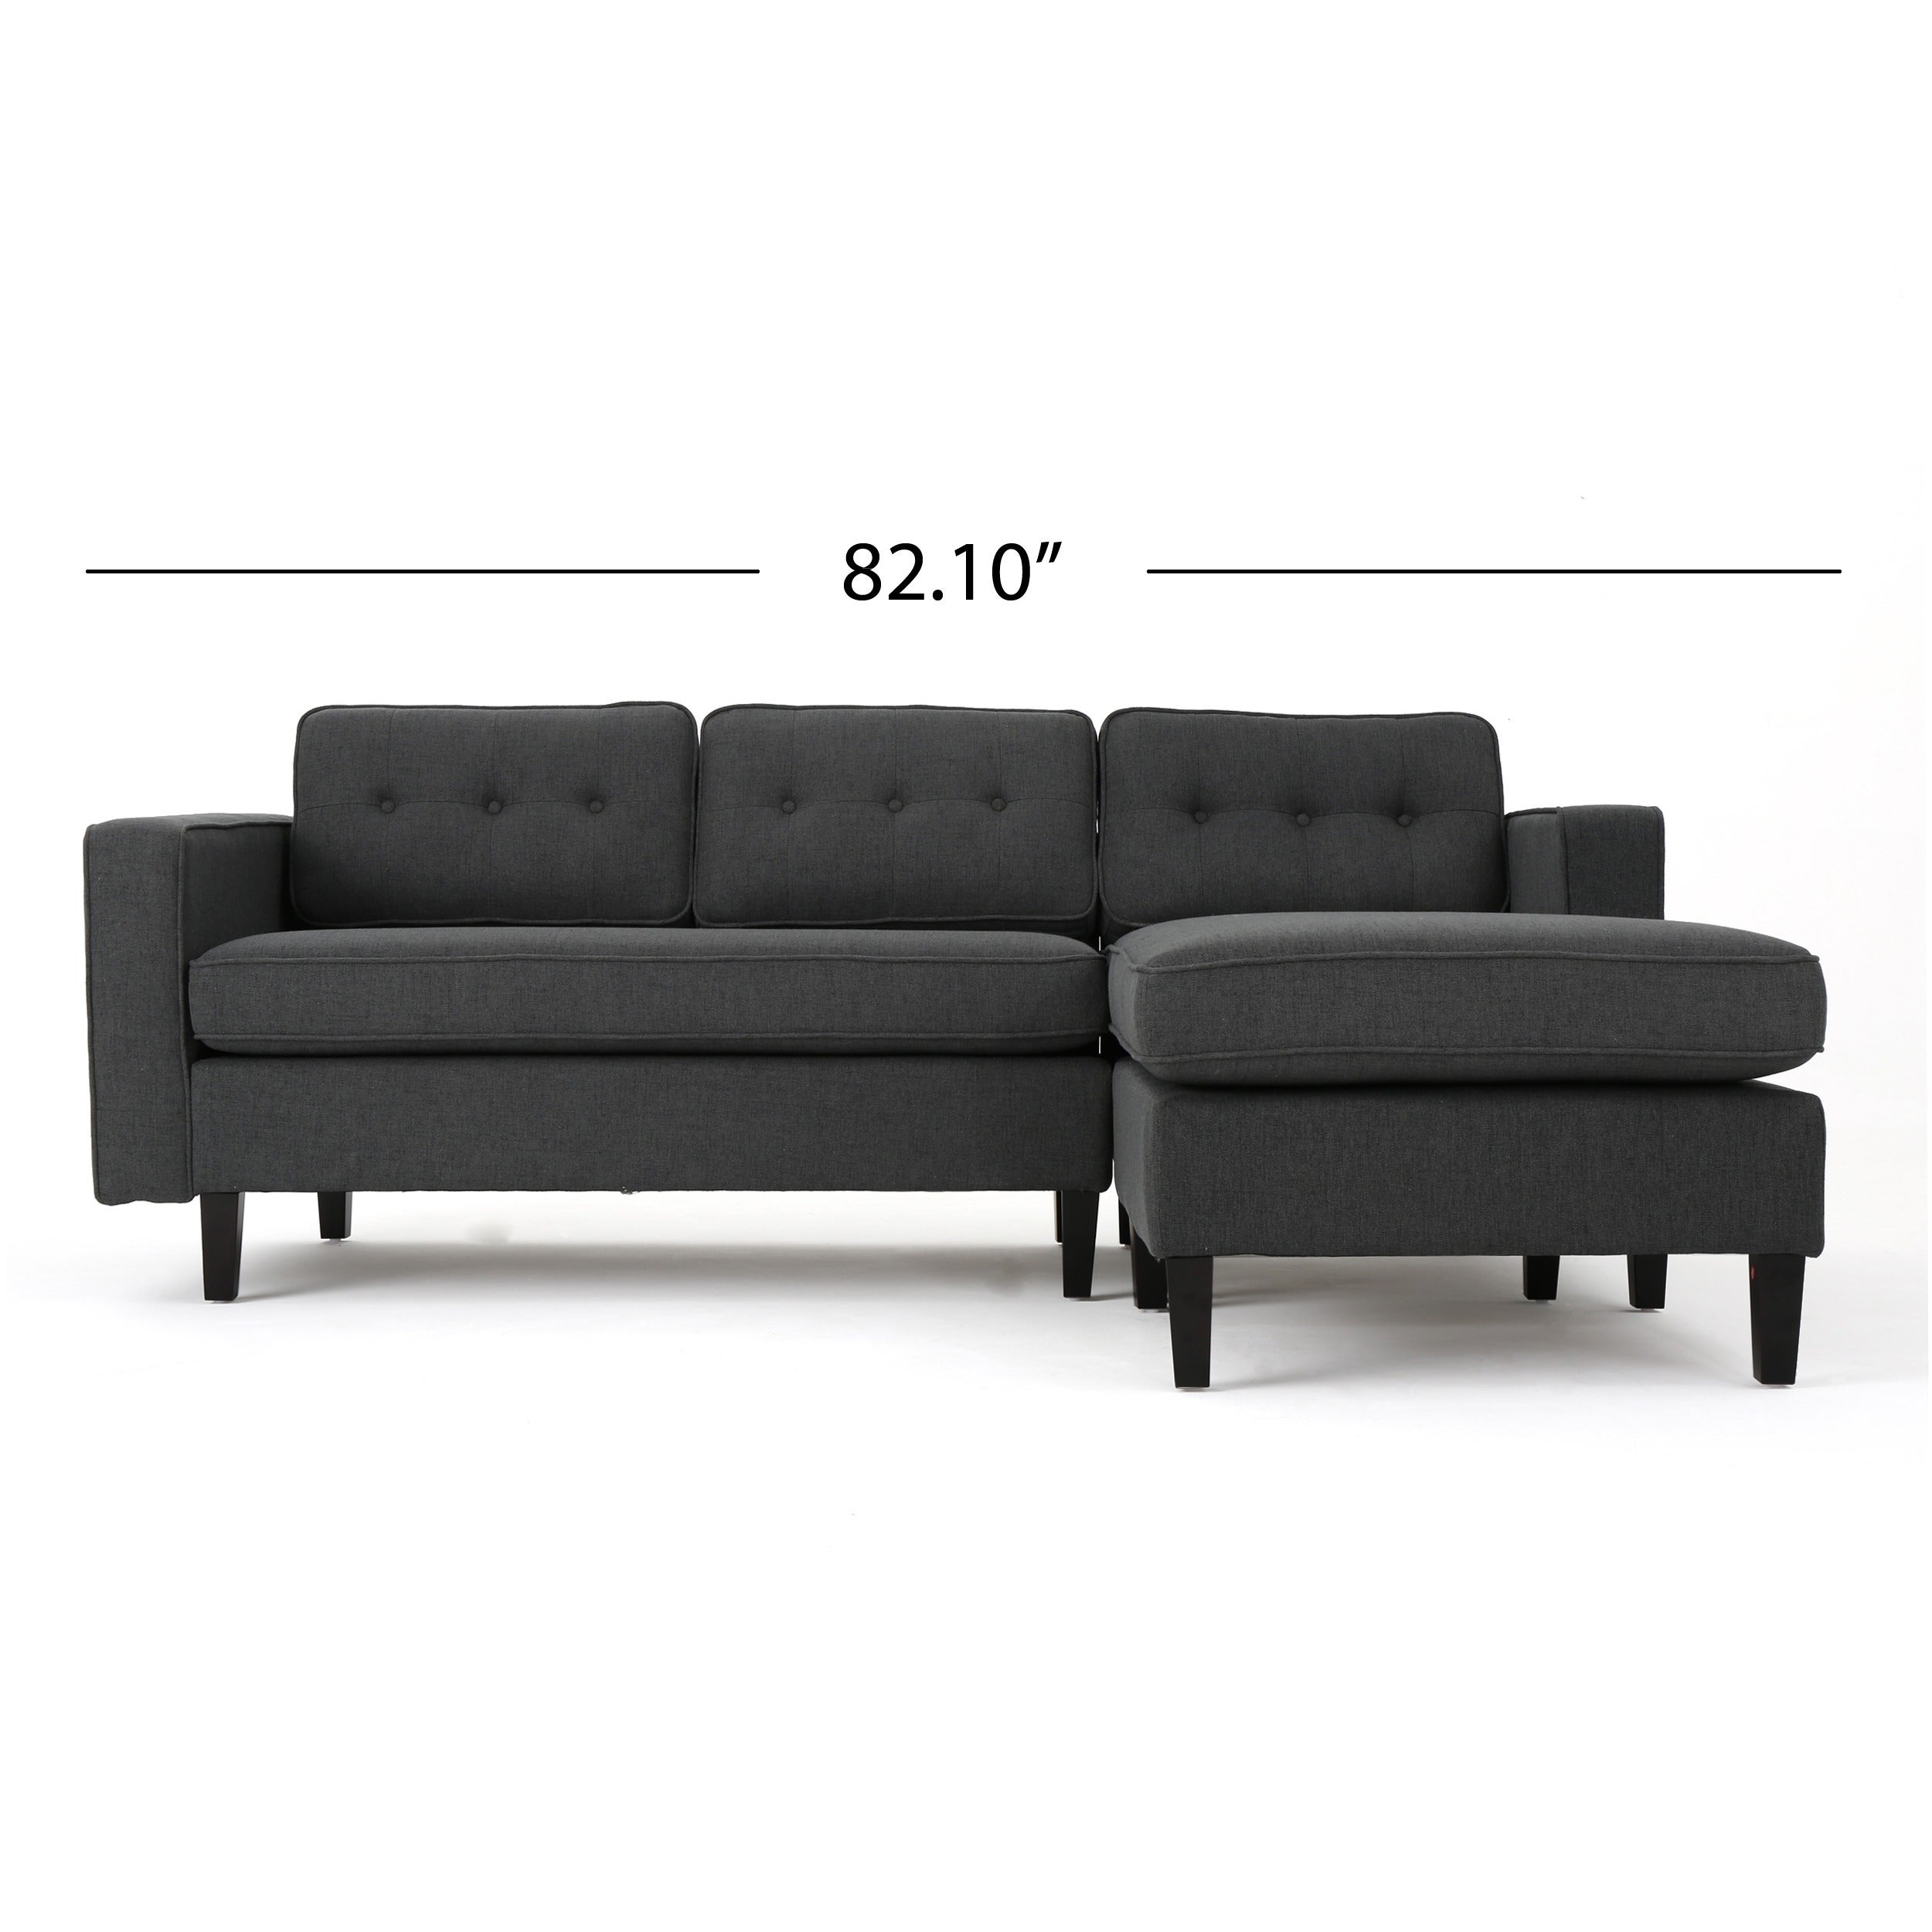 Charmant Shop Wilder Mid Century Modern 2 Piece Fabric Chaise Sectional Sofa By  Christopher Knight Home   On Sale   Free Shipping Today   Overstock.com    14675119